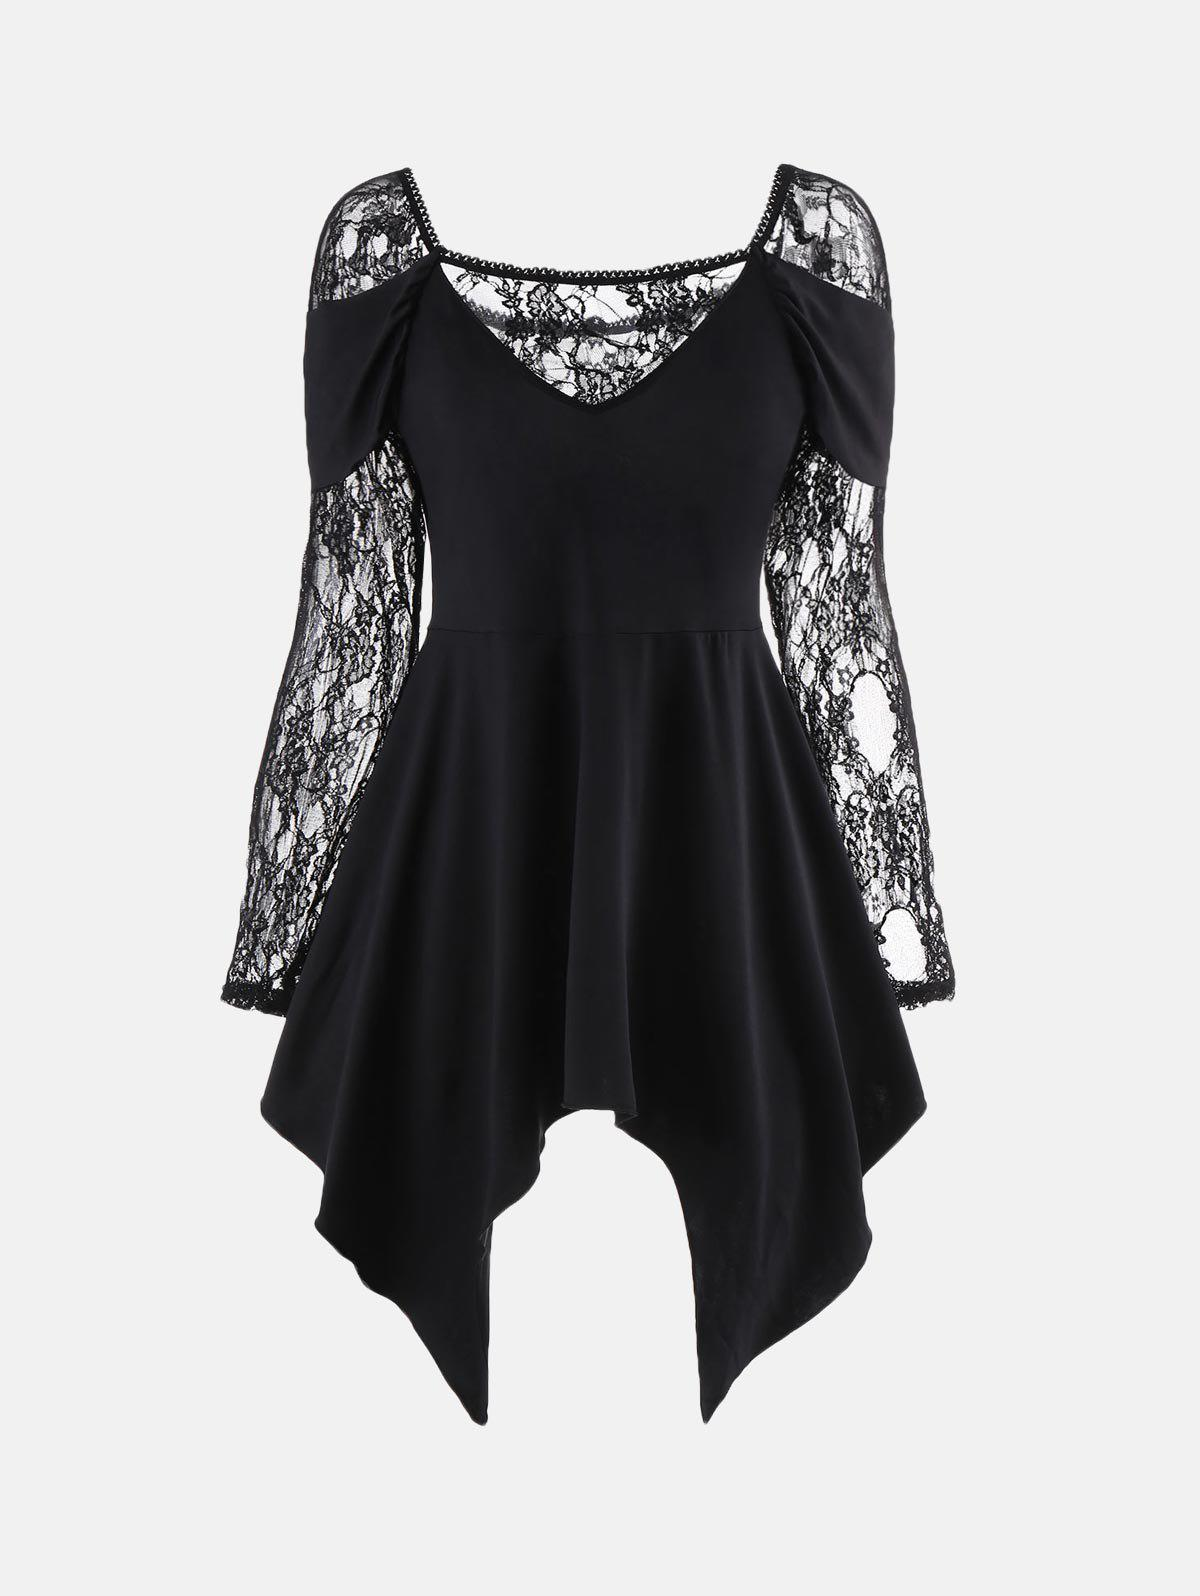 Long Lace Sleeve Handkerchief Tunic TopWOMEN<br><br>Size: XL; Color: BLACK; Material: Polyester,Spandex; Shirt Length: Regular; Sleeve Length: Full; Collar: Square Neck; Style: Fashion; Embellishment: Lace; Pattern Type: Solid Color; Season: Fall,Spring; Elasticity: Elastic; Weight: 0.3100kg; Package Contents: 1 x Top;